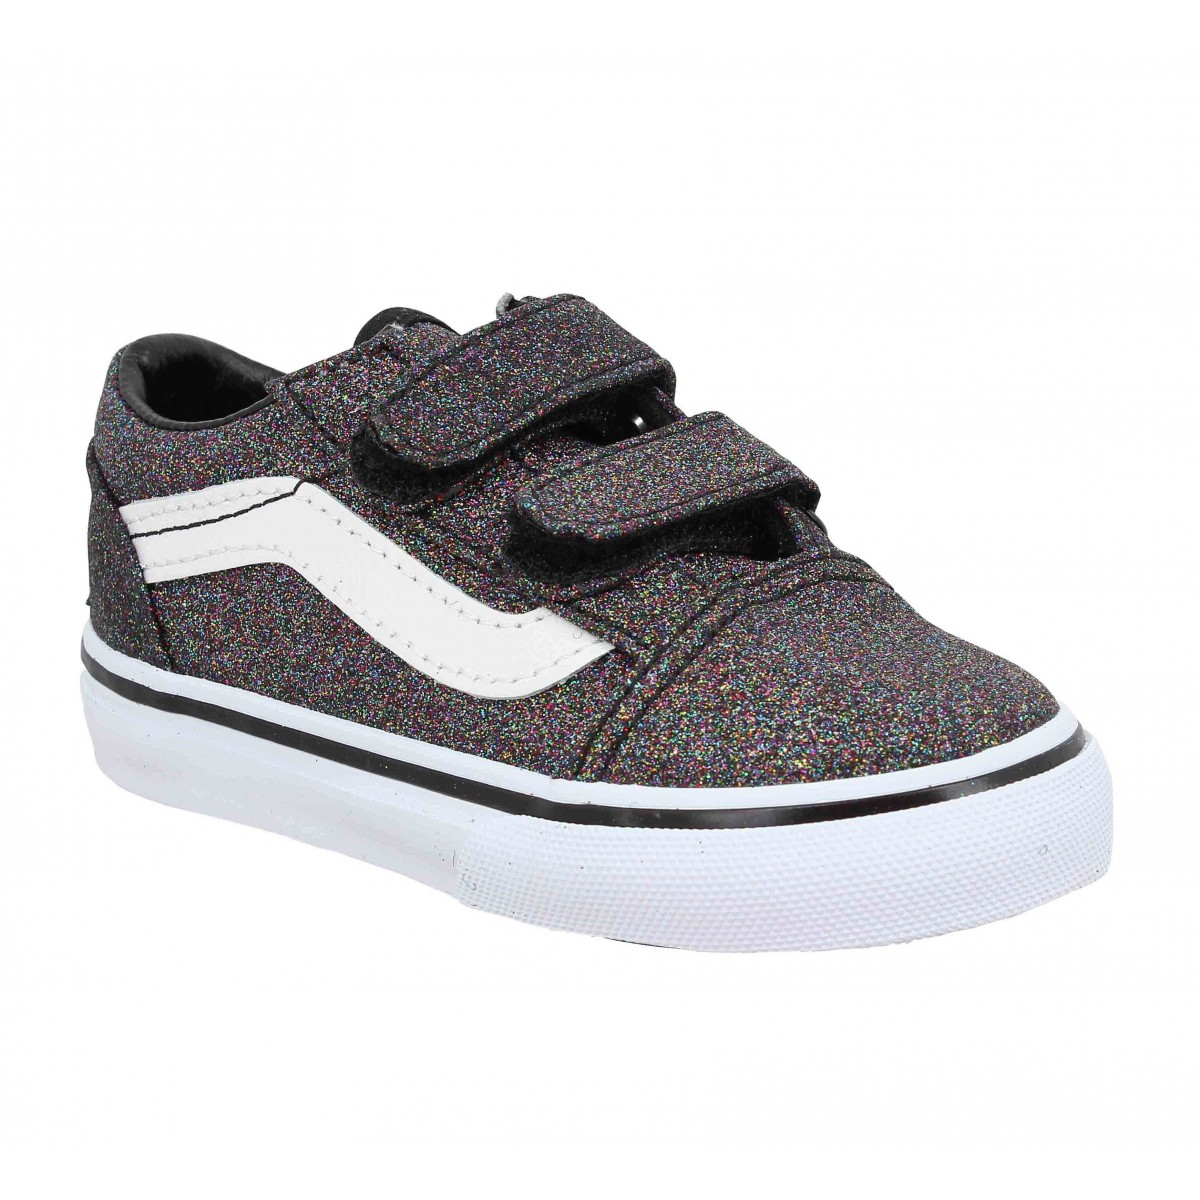 vans old skool vl glitter enfant noir enfants fanny chaussures. Black Bedroom Furniture Sets. Home Design Ideas